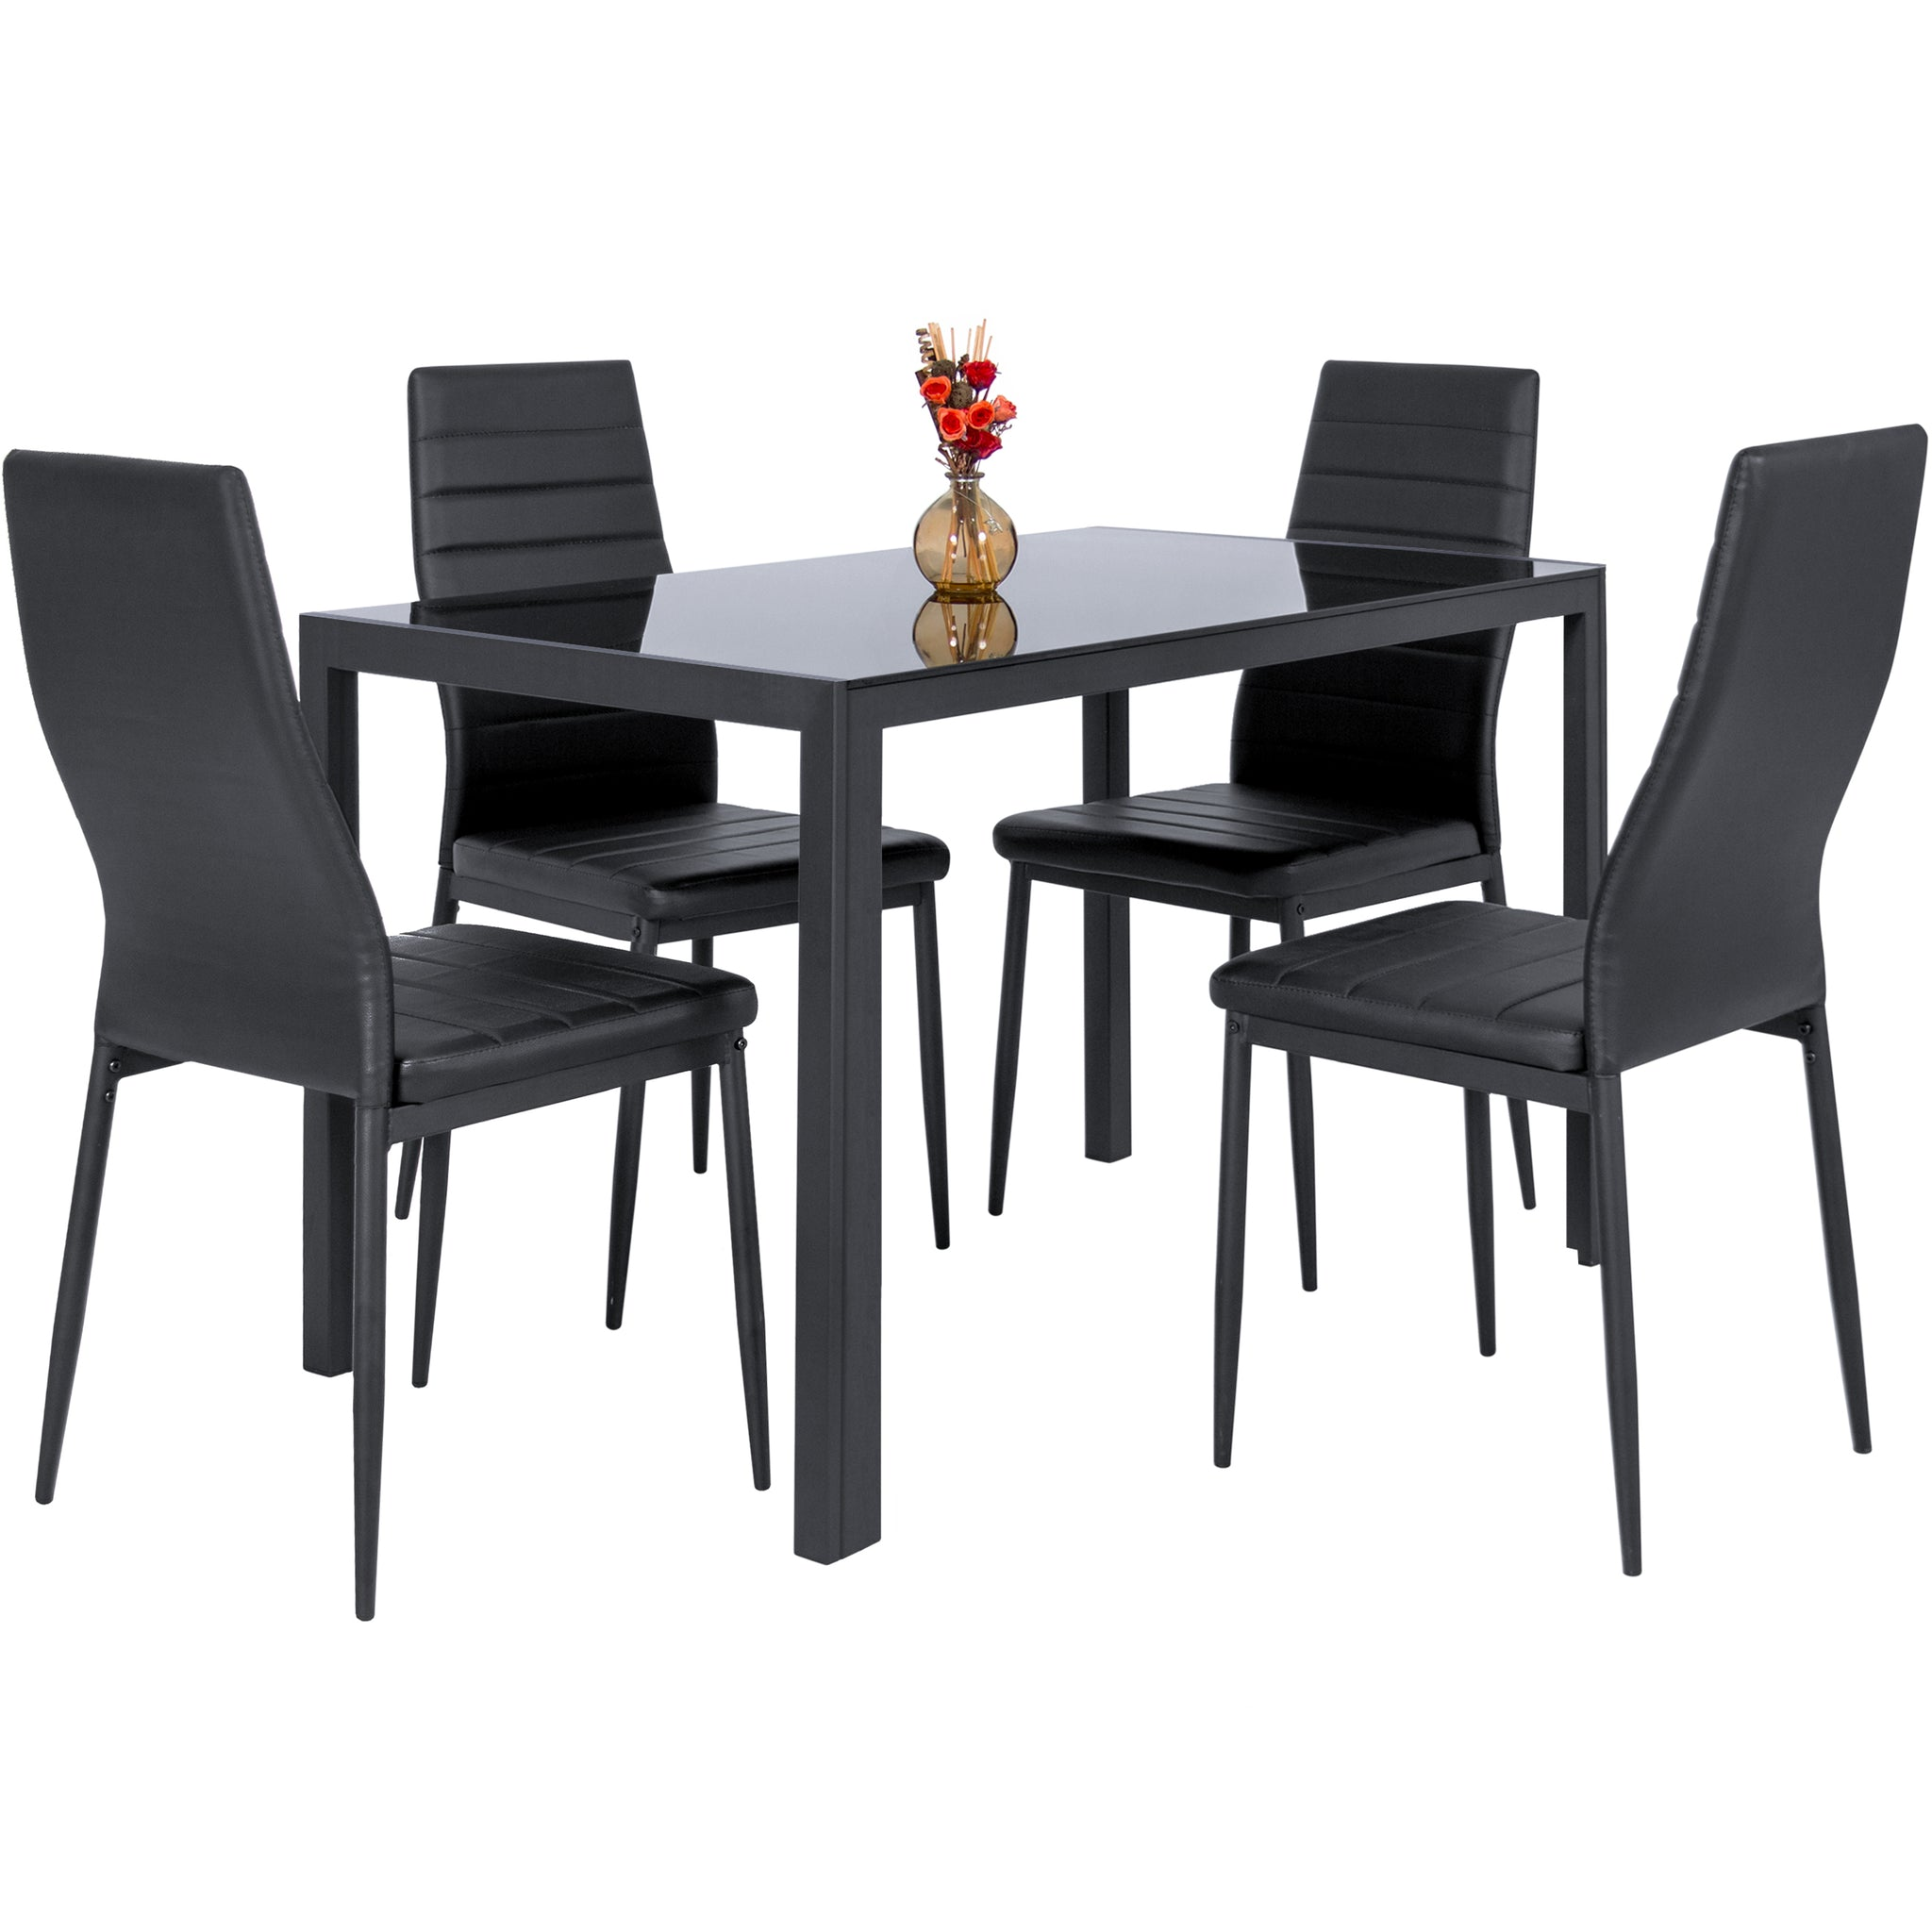 5 Piece Dining Table Set W/ Glass Top, Leather Chairs   Black